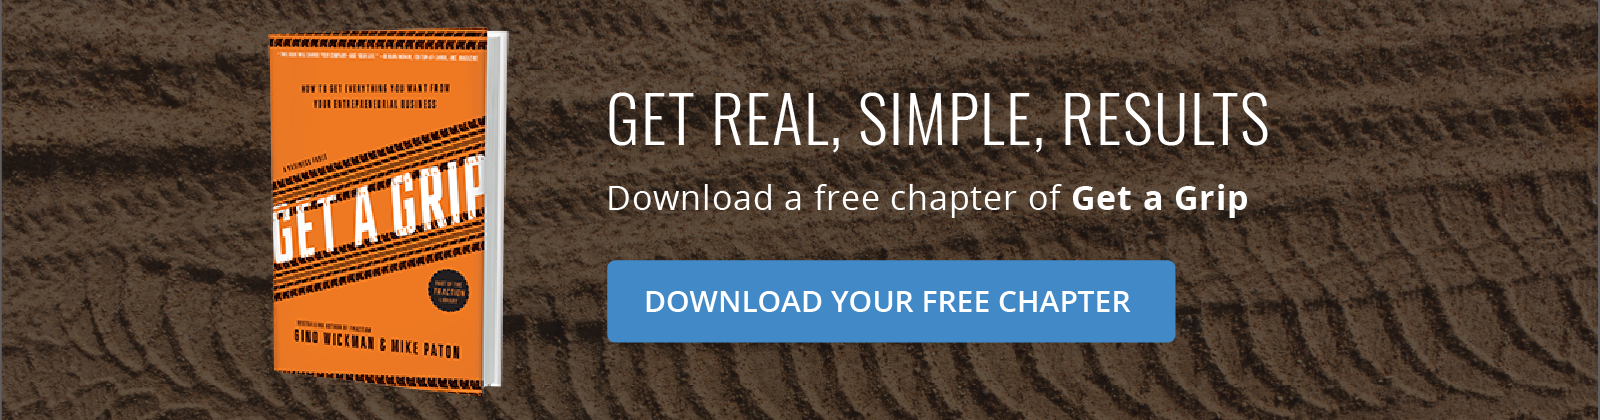 Get real, simple, results! Click here to download a free chapter of Get a Grip.